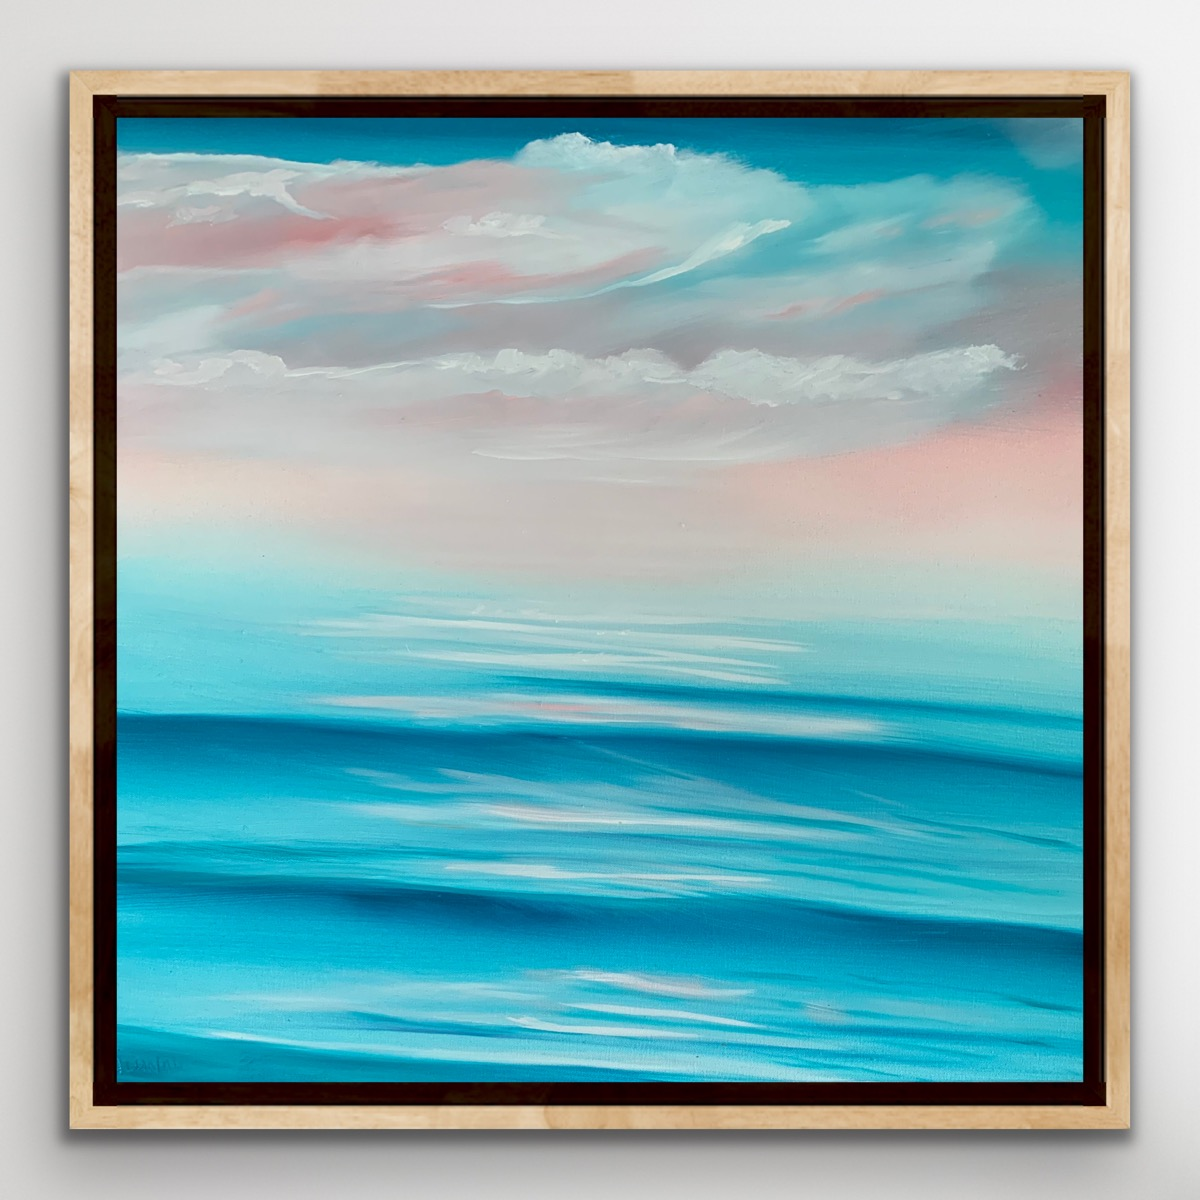 Alanah Jarvis On White Wall Ocean Painting